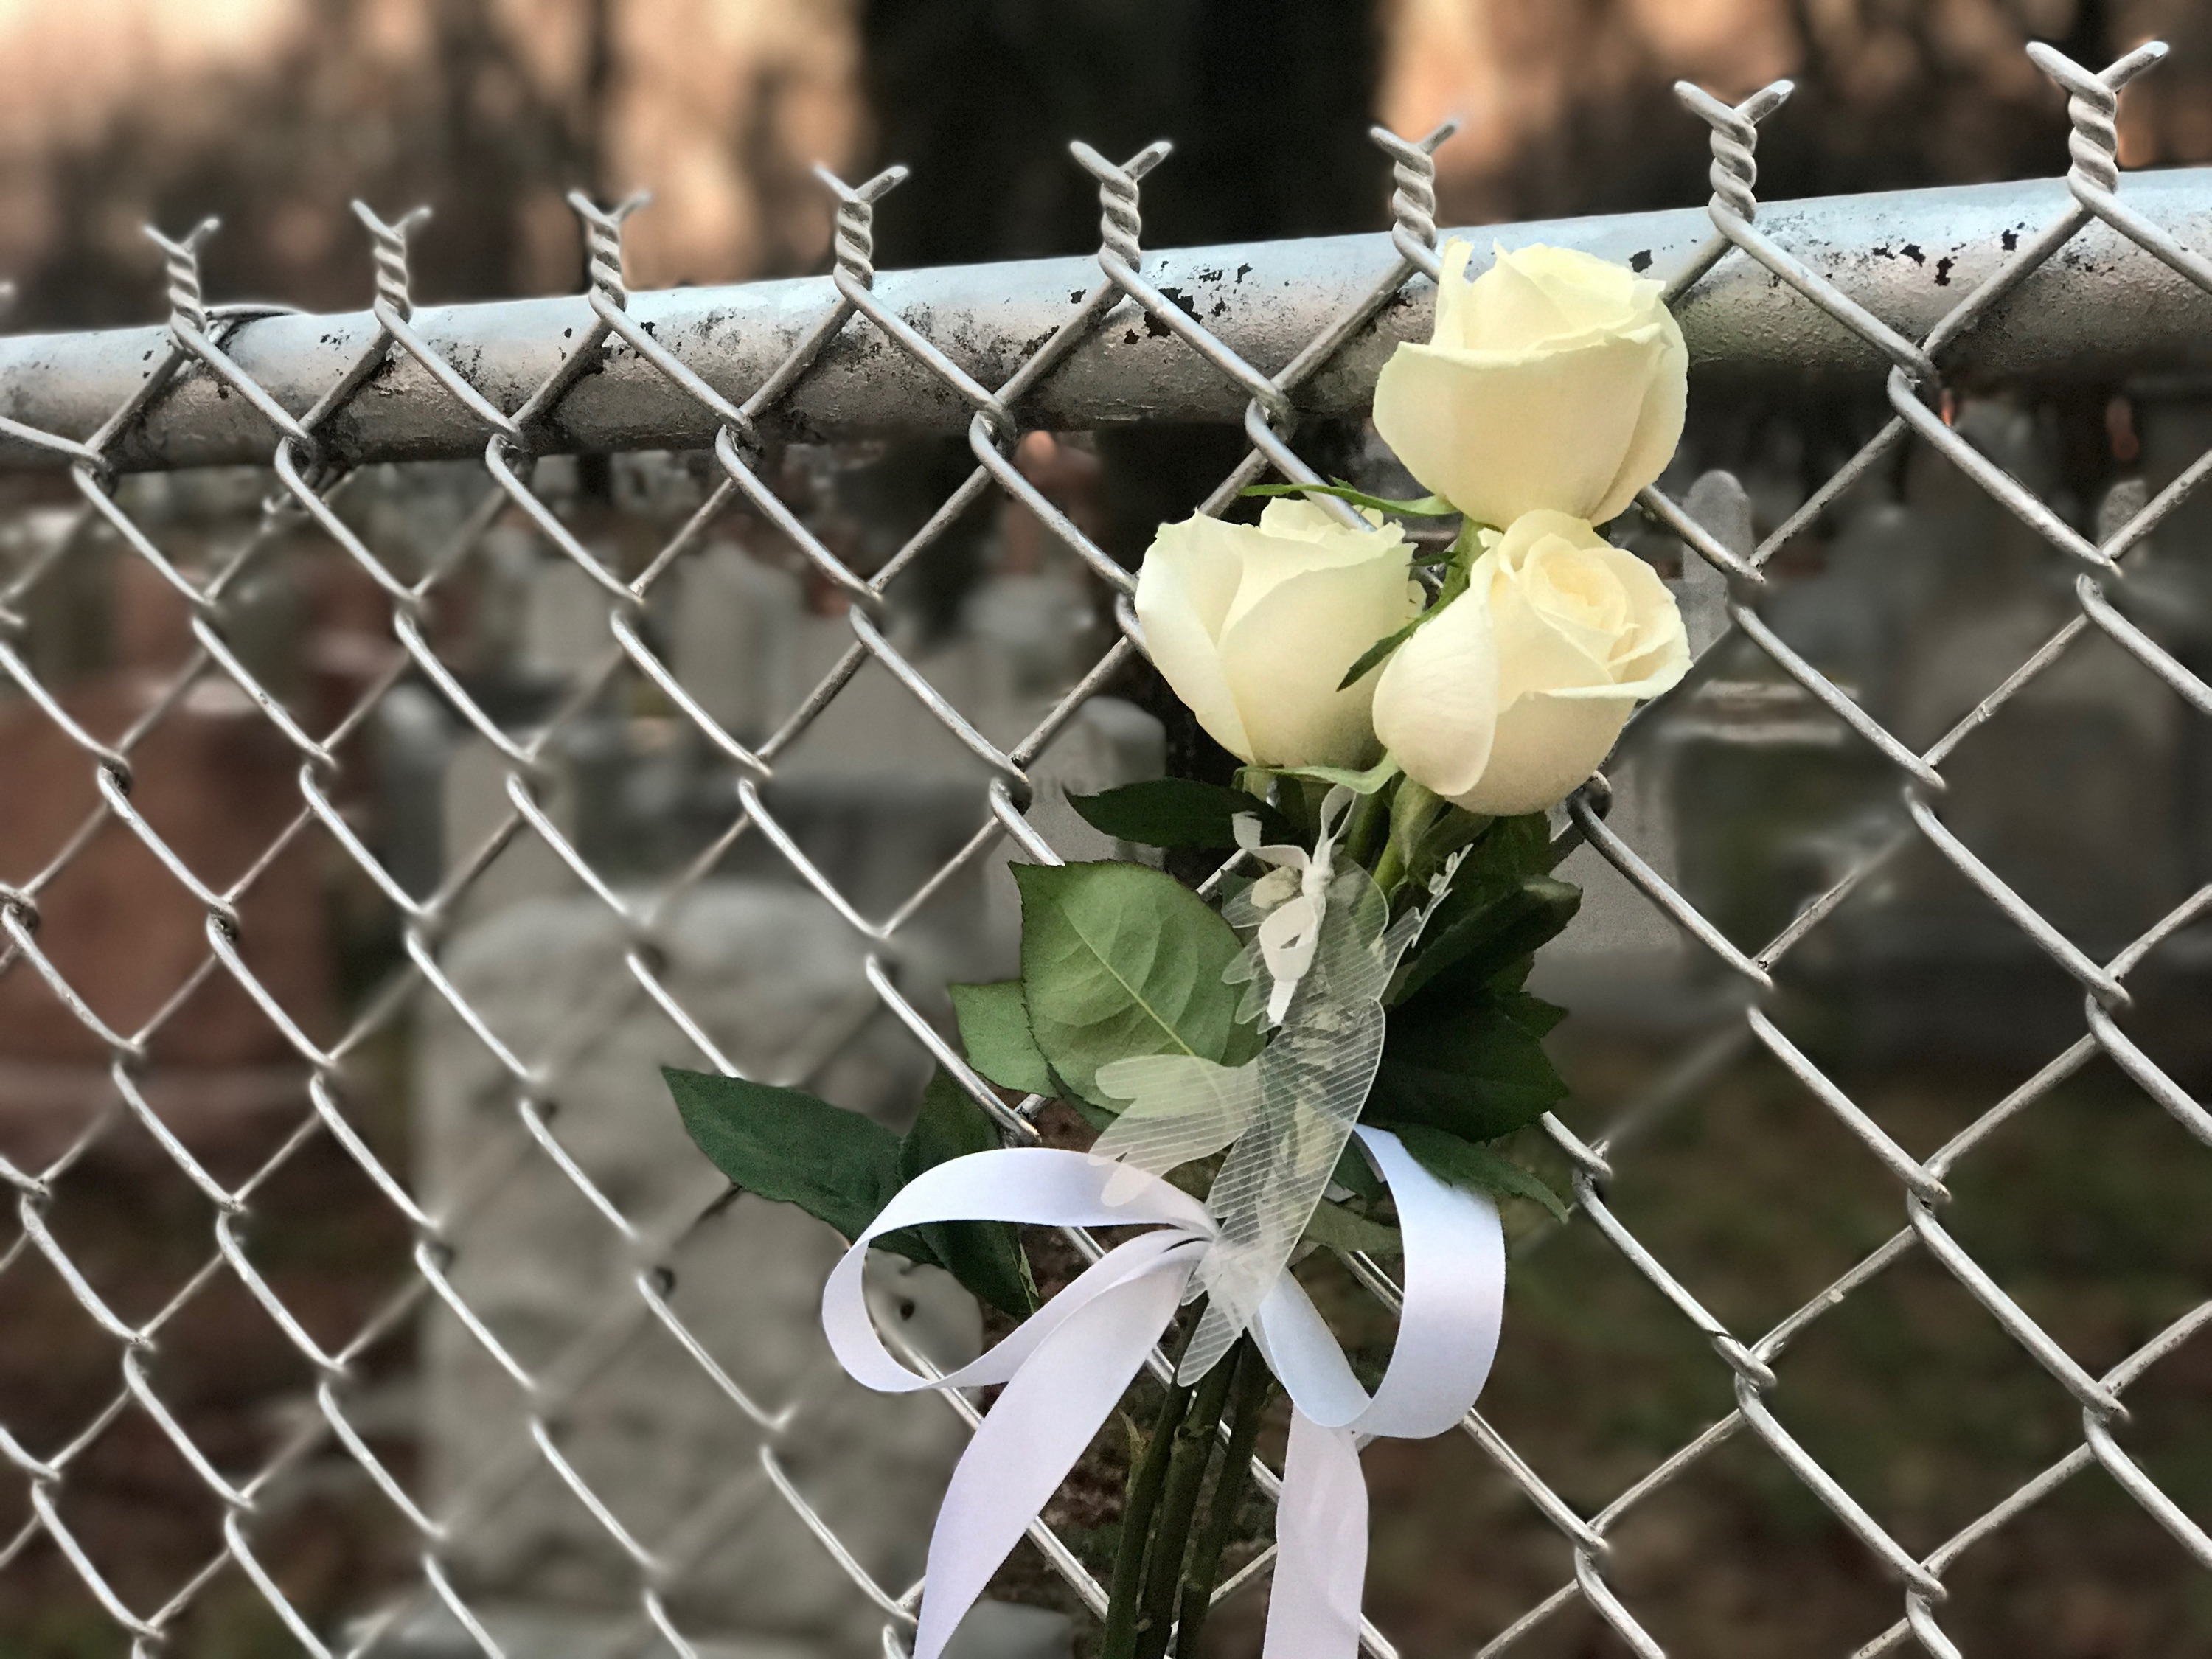 Flowers Left At A Fence Surrounding The Chesed Shel Emeth Society Cemetery In University City, A Suburb Of St. Louis, Missouri. Photo By Ian Mason/GSS Correspondent.